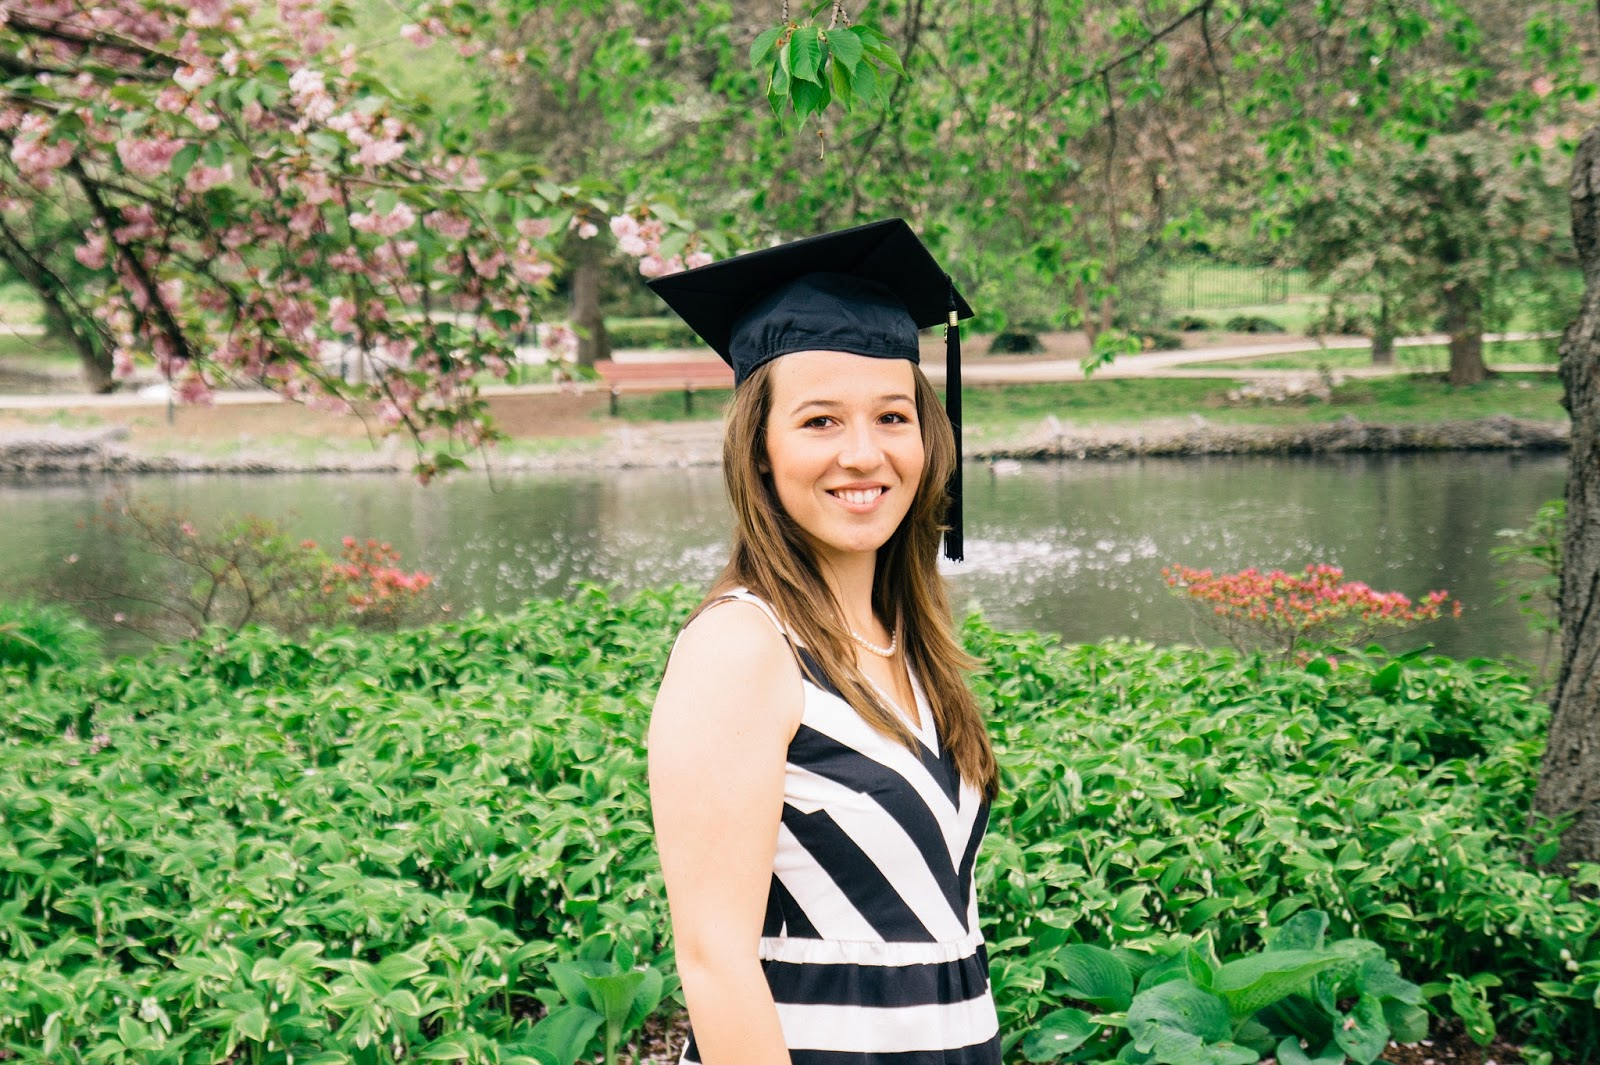 Graduate wearing her cap in front of pink, flowering trees and pond.